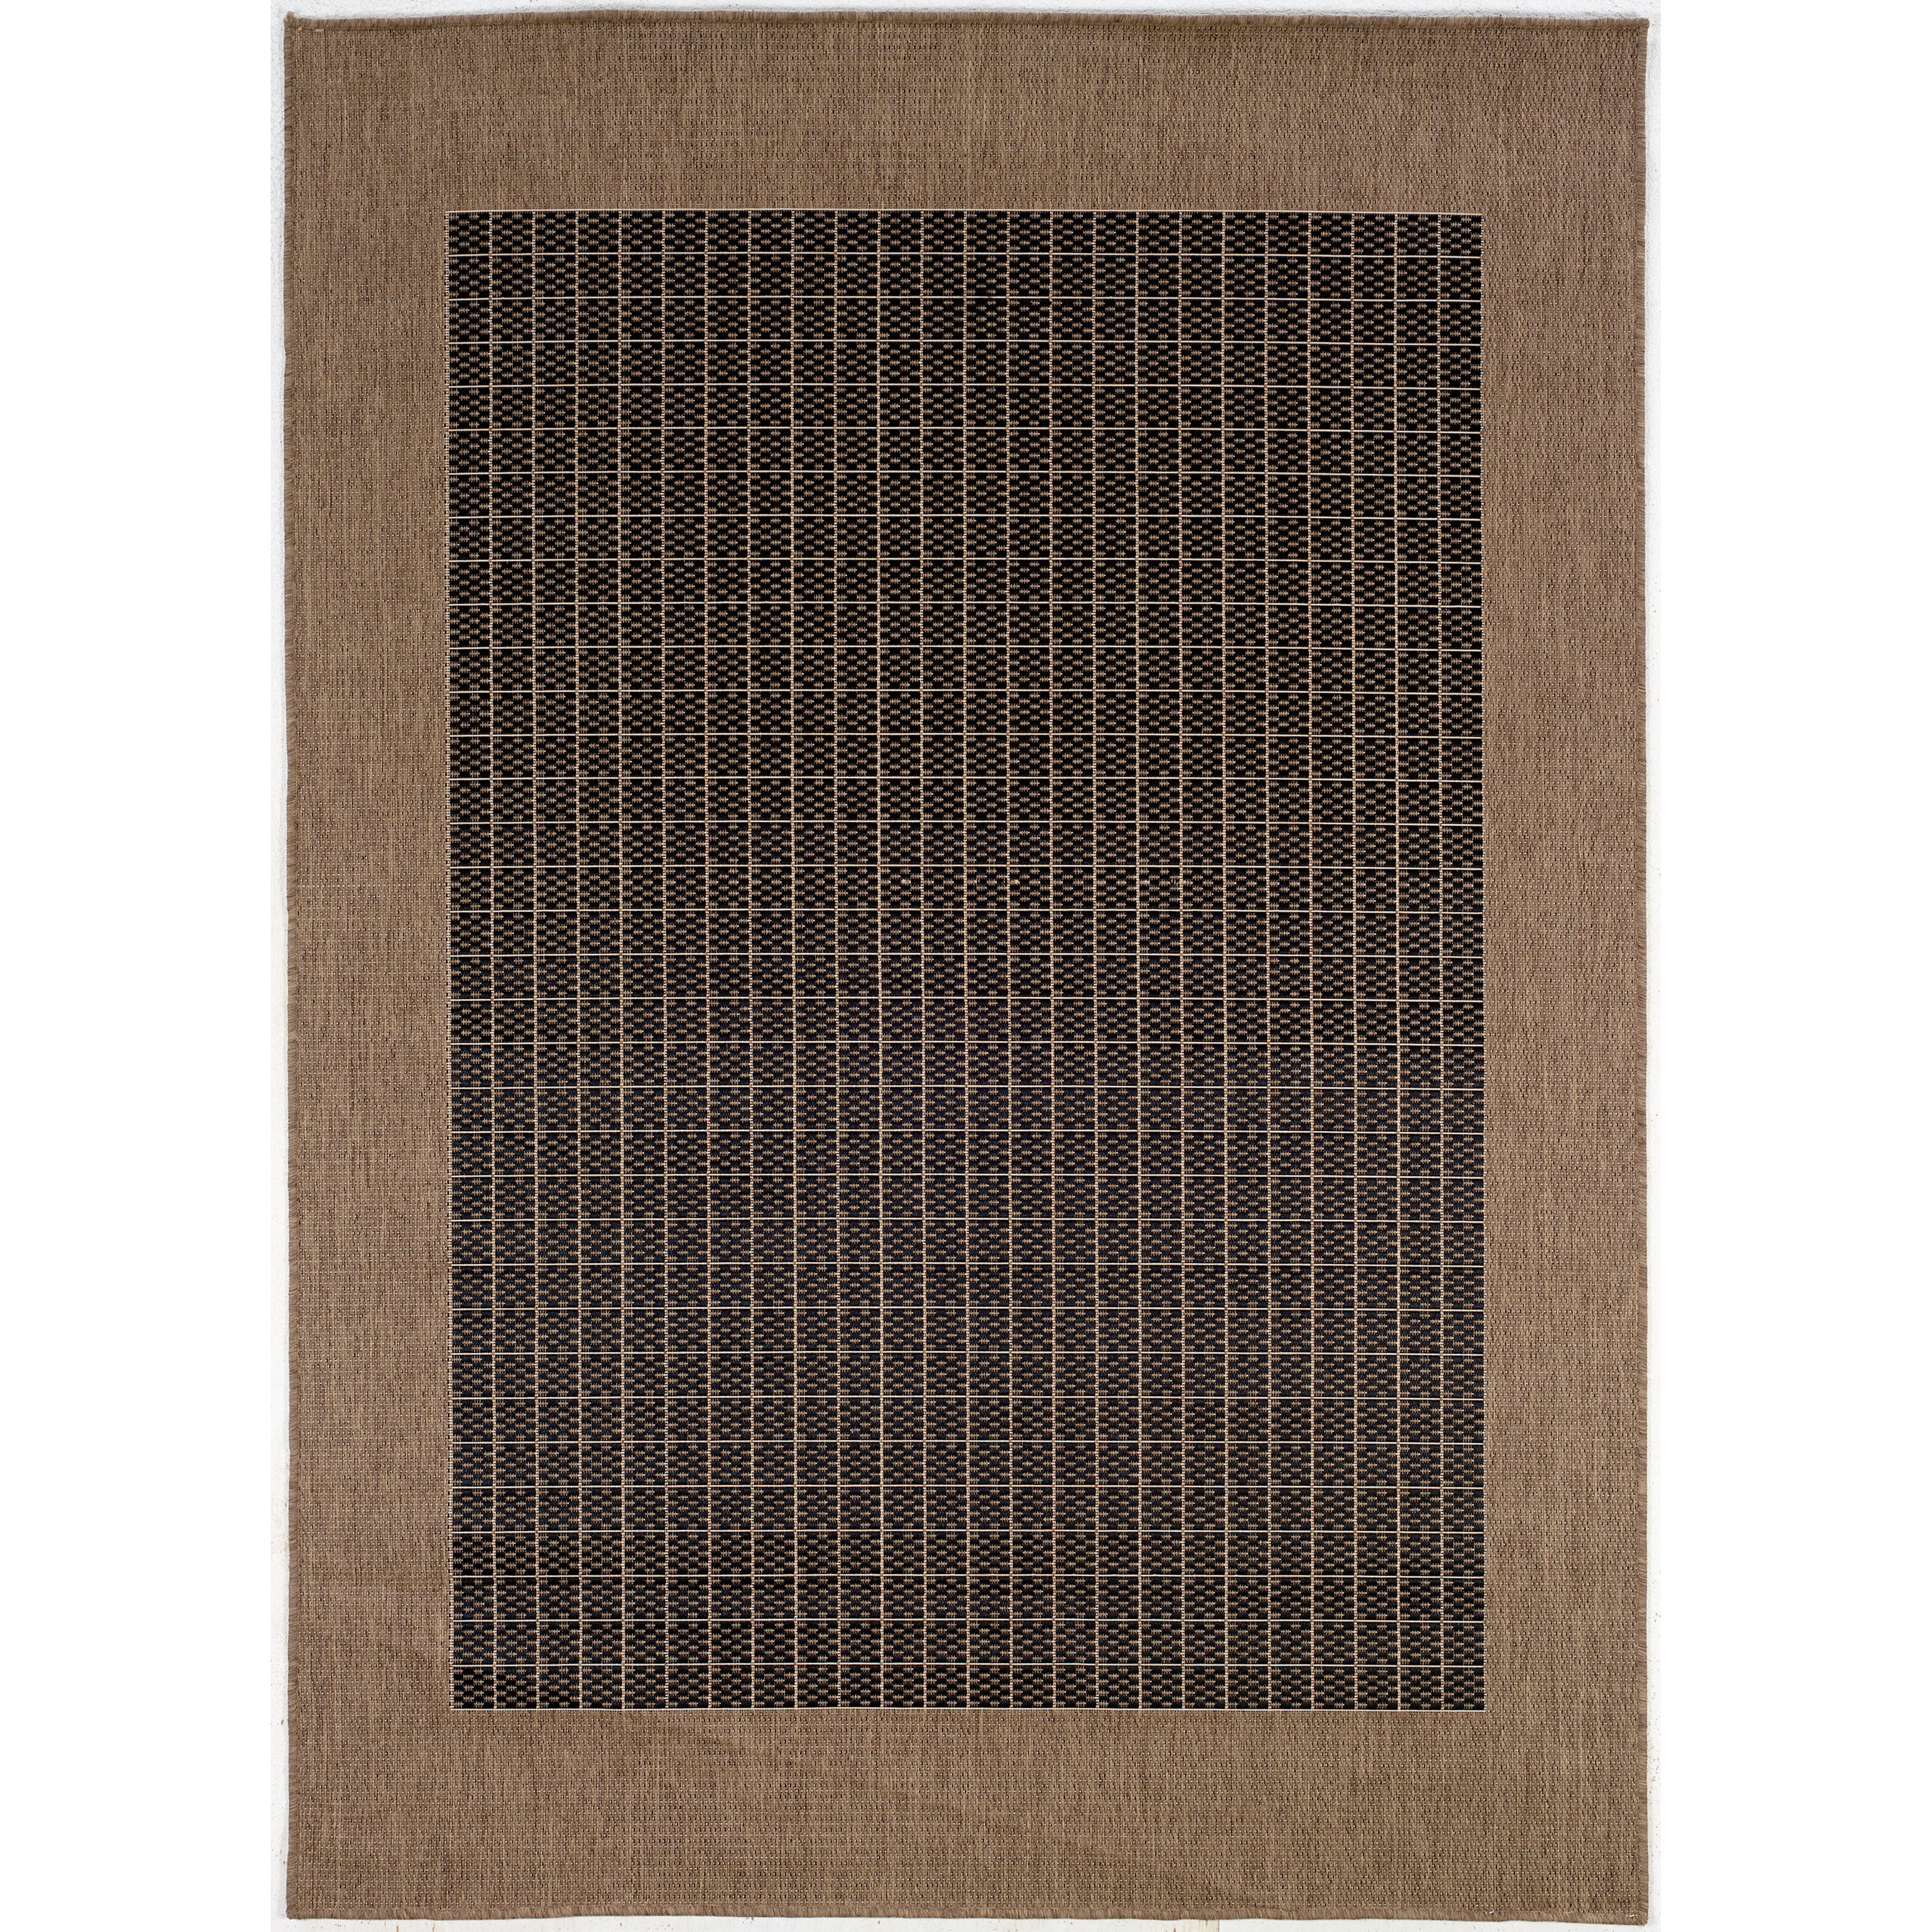 Indoor Outdoor Rugs Black And White: Couristan Recife Checkered Field Black Cocoa Indoor